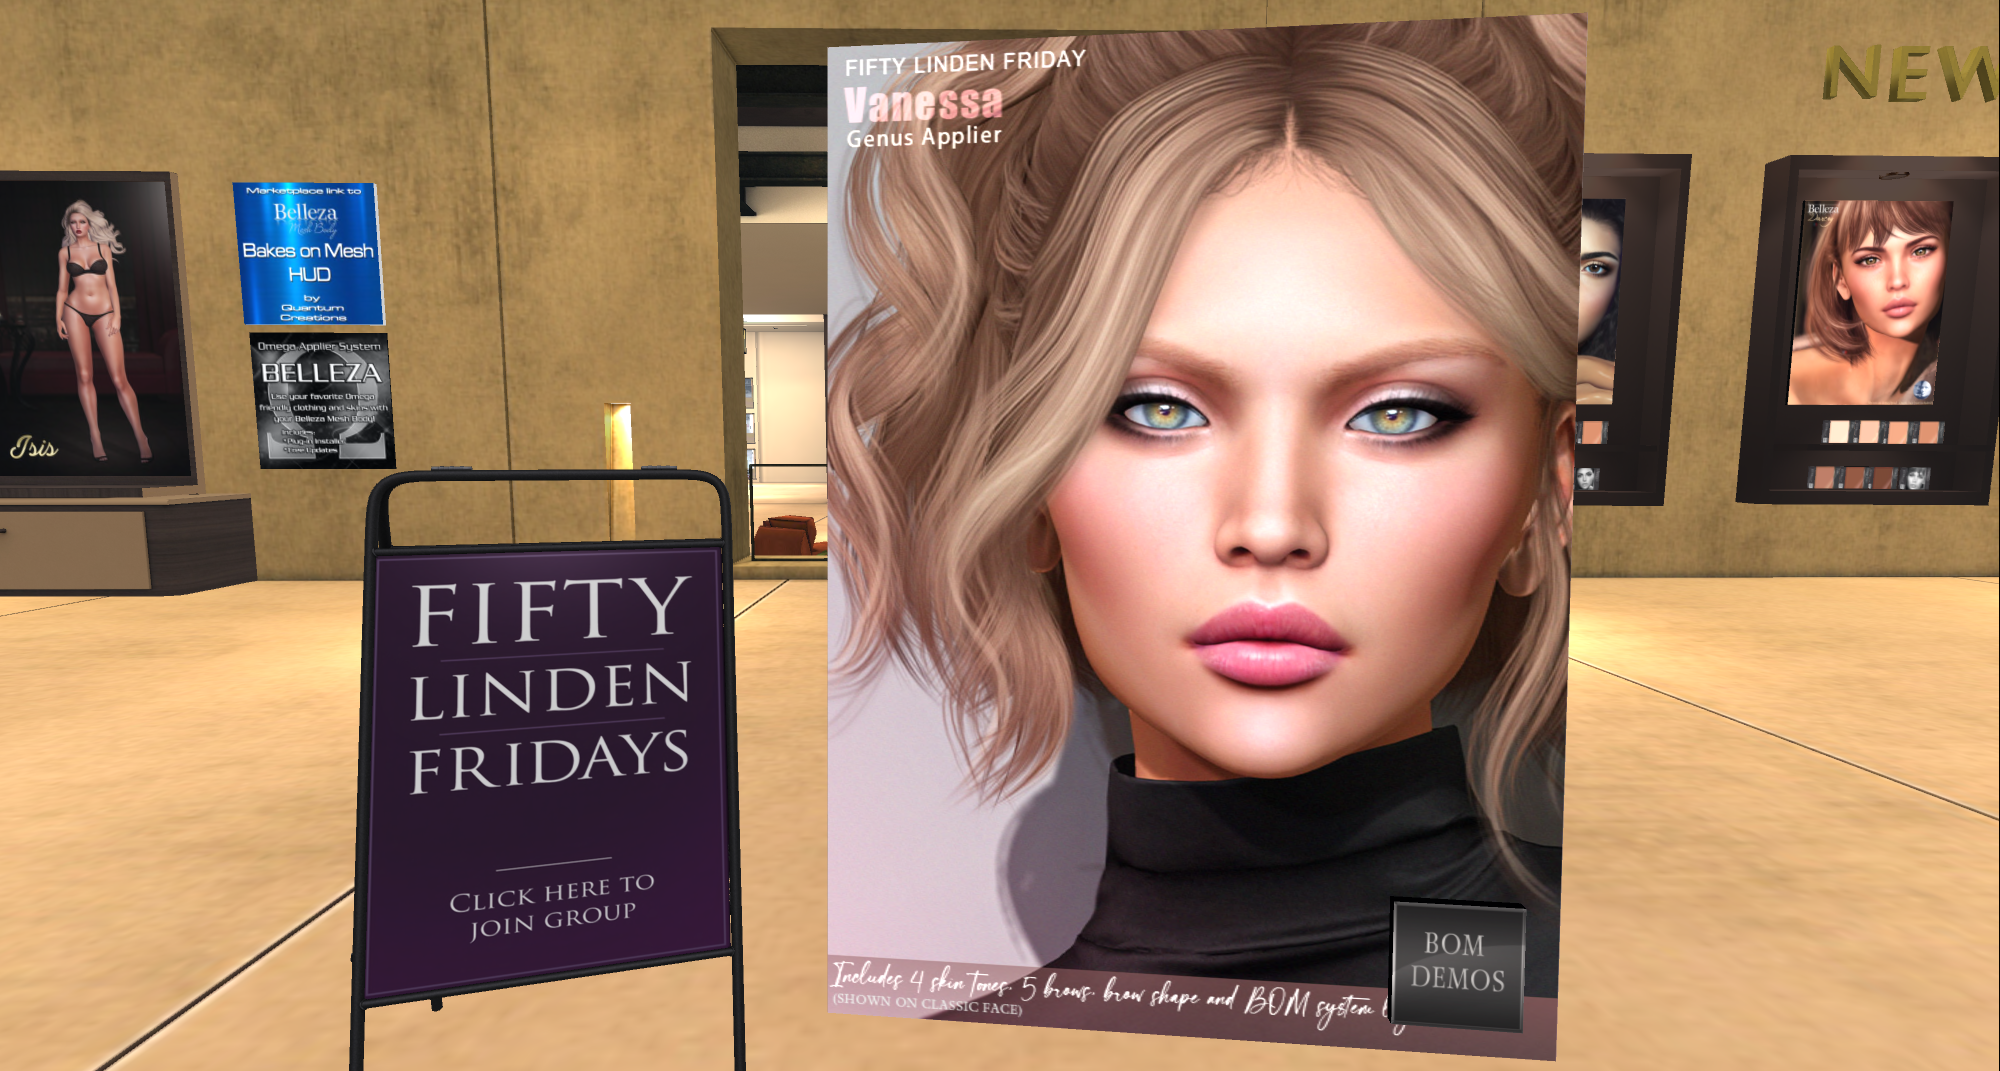 Your Fifty Linden Fridays list!